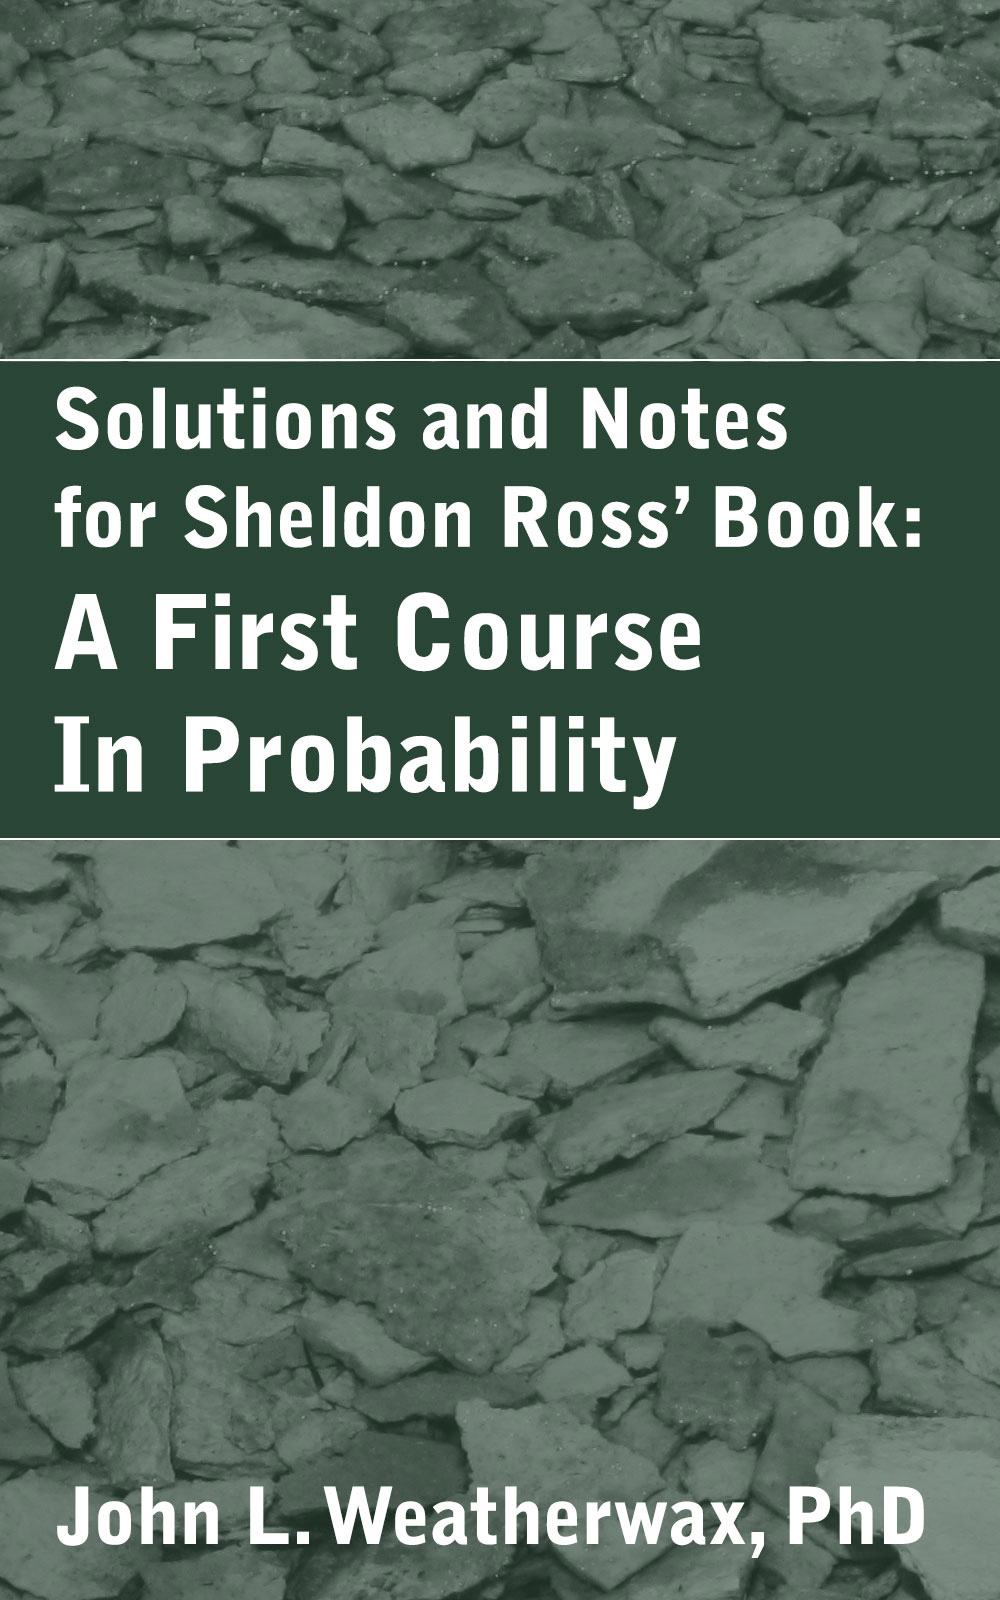 Solutions and Notes for Sheldon Ross' Book: A First Course in Probability